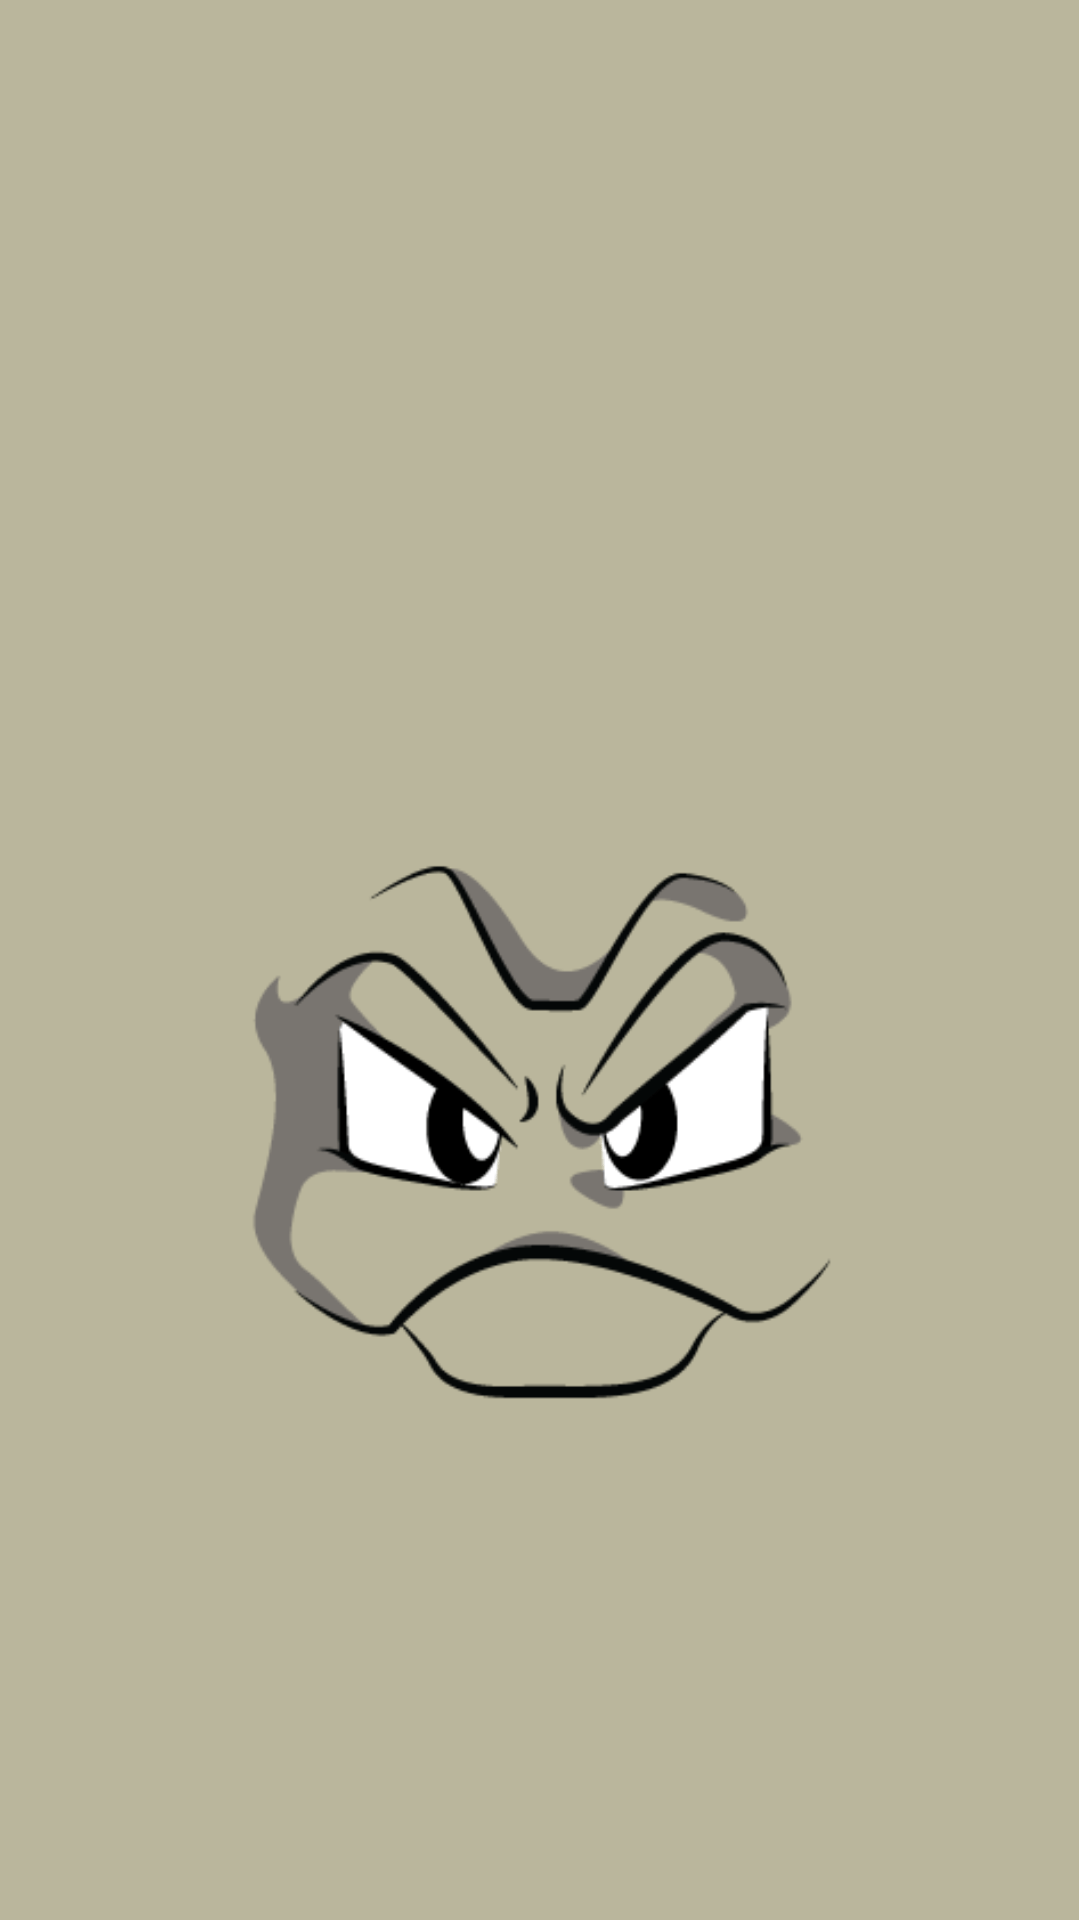 Download Geodude 1080 x 1920 Wallpapers - 4675527 - POKEMON ...